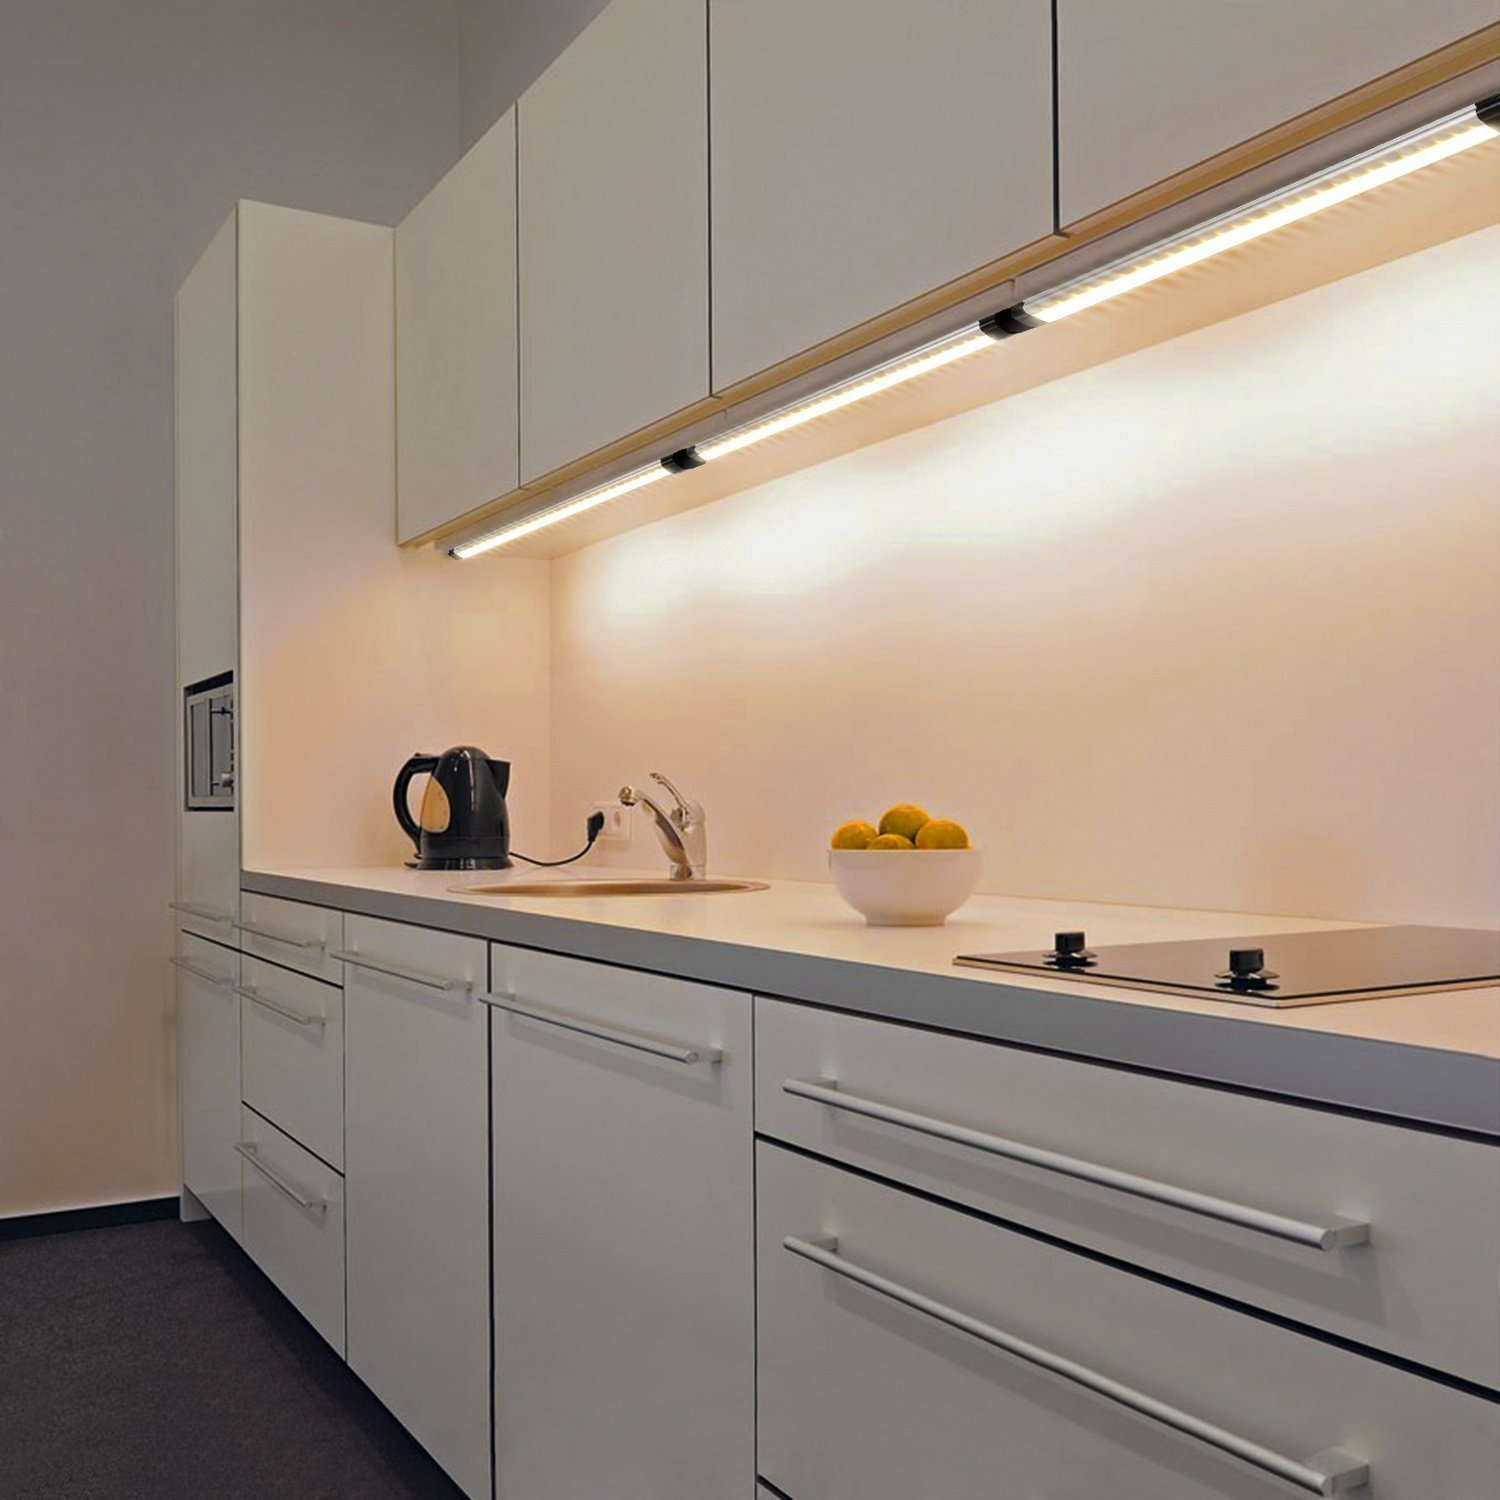 Light Under Kitchen Cabinet: Albrillo LED Under Cabinet Lighting, Dimmable